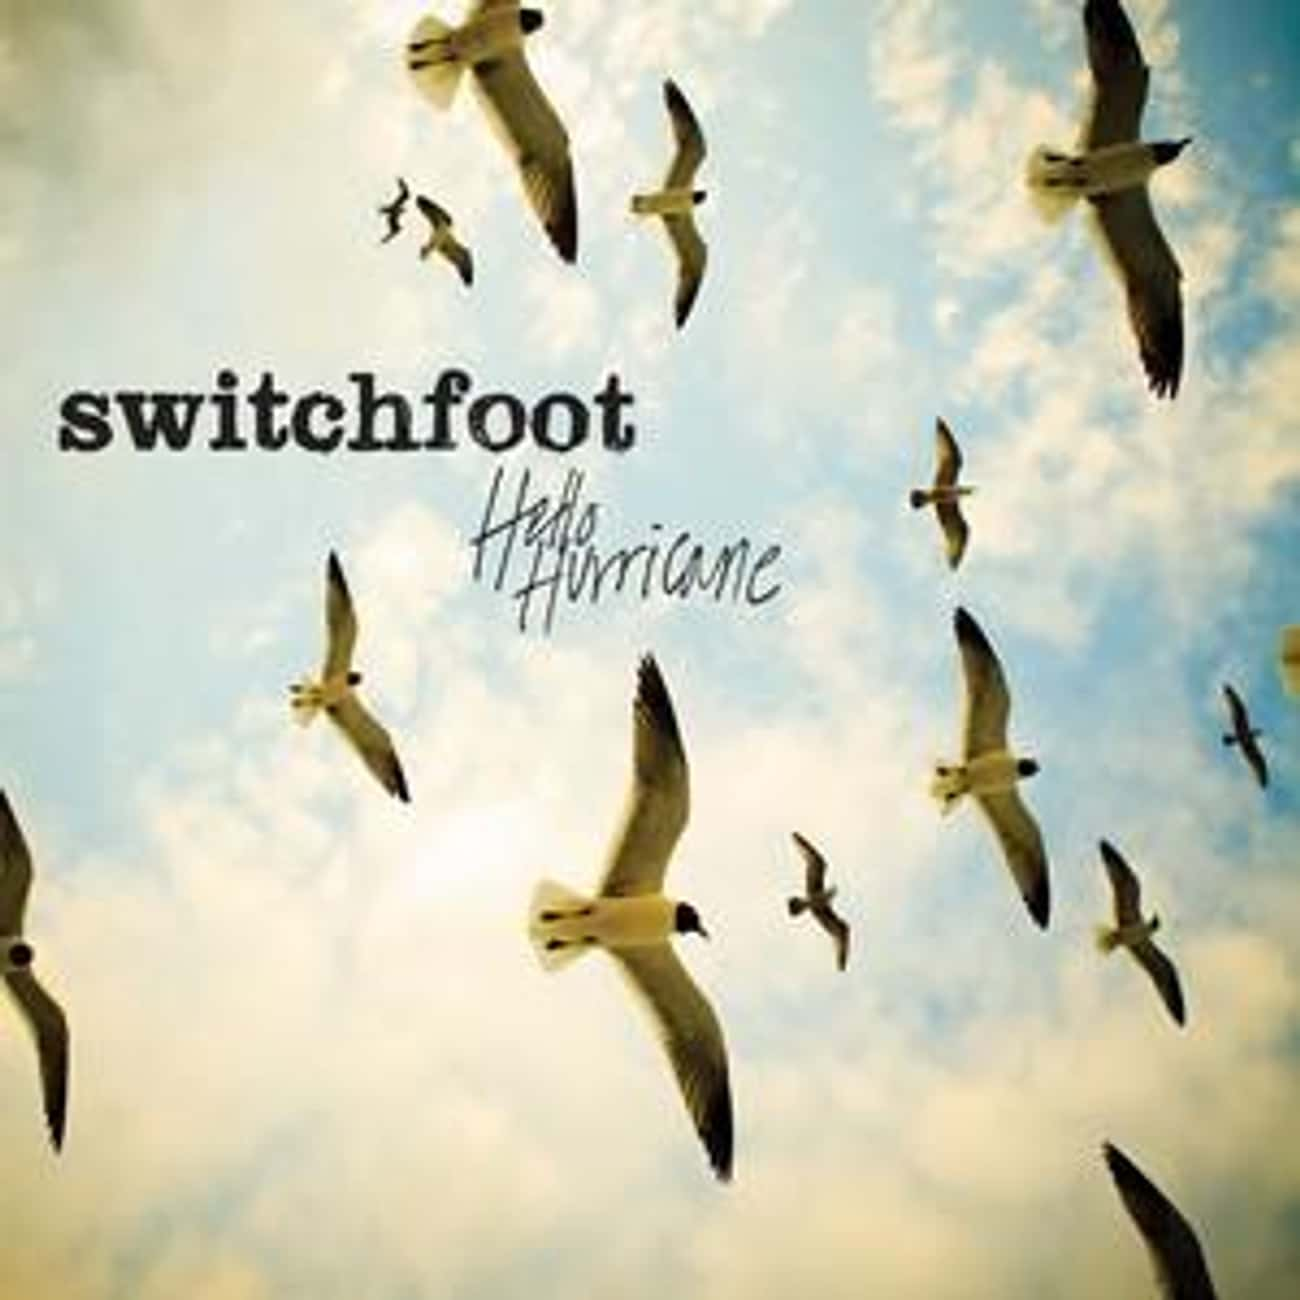 Hello Hurricane is listed (or ranked) 2 on the list The Best Switchfoot Albums of All Time